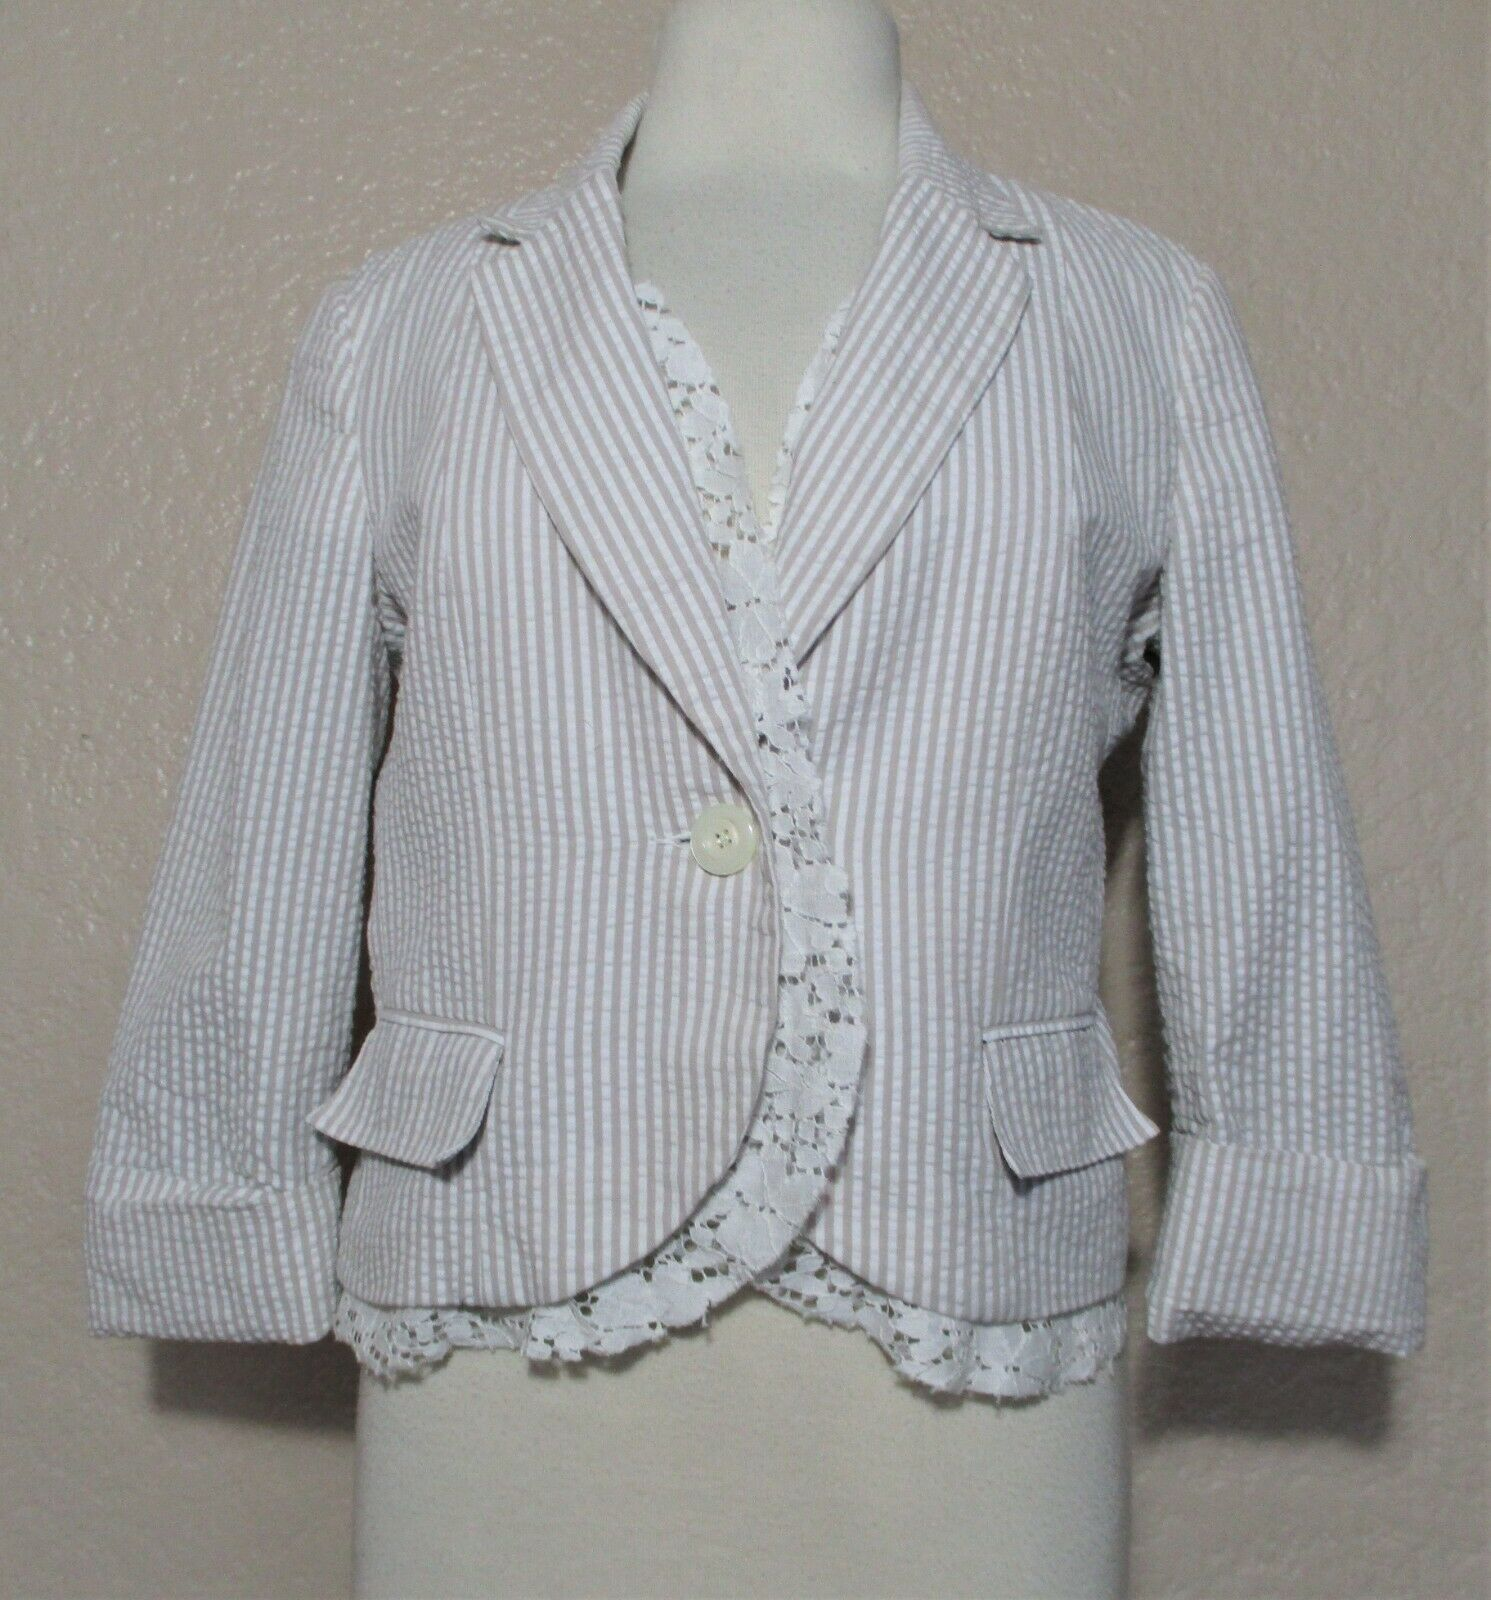 Primary image for Tabitha Anthropologie Jacket Size 10 Women tan white striped seersucker